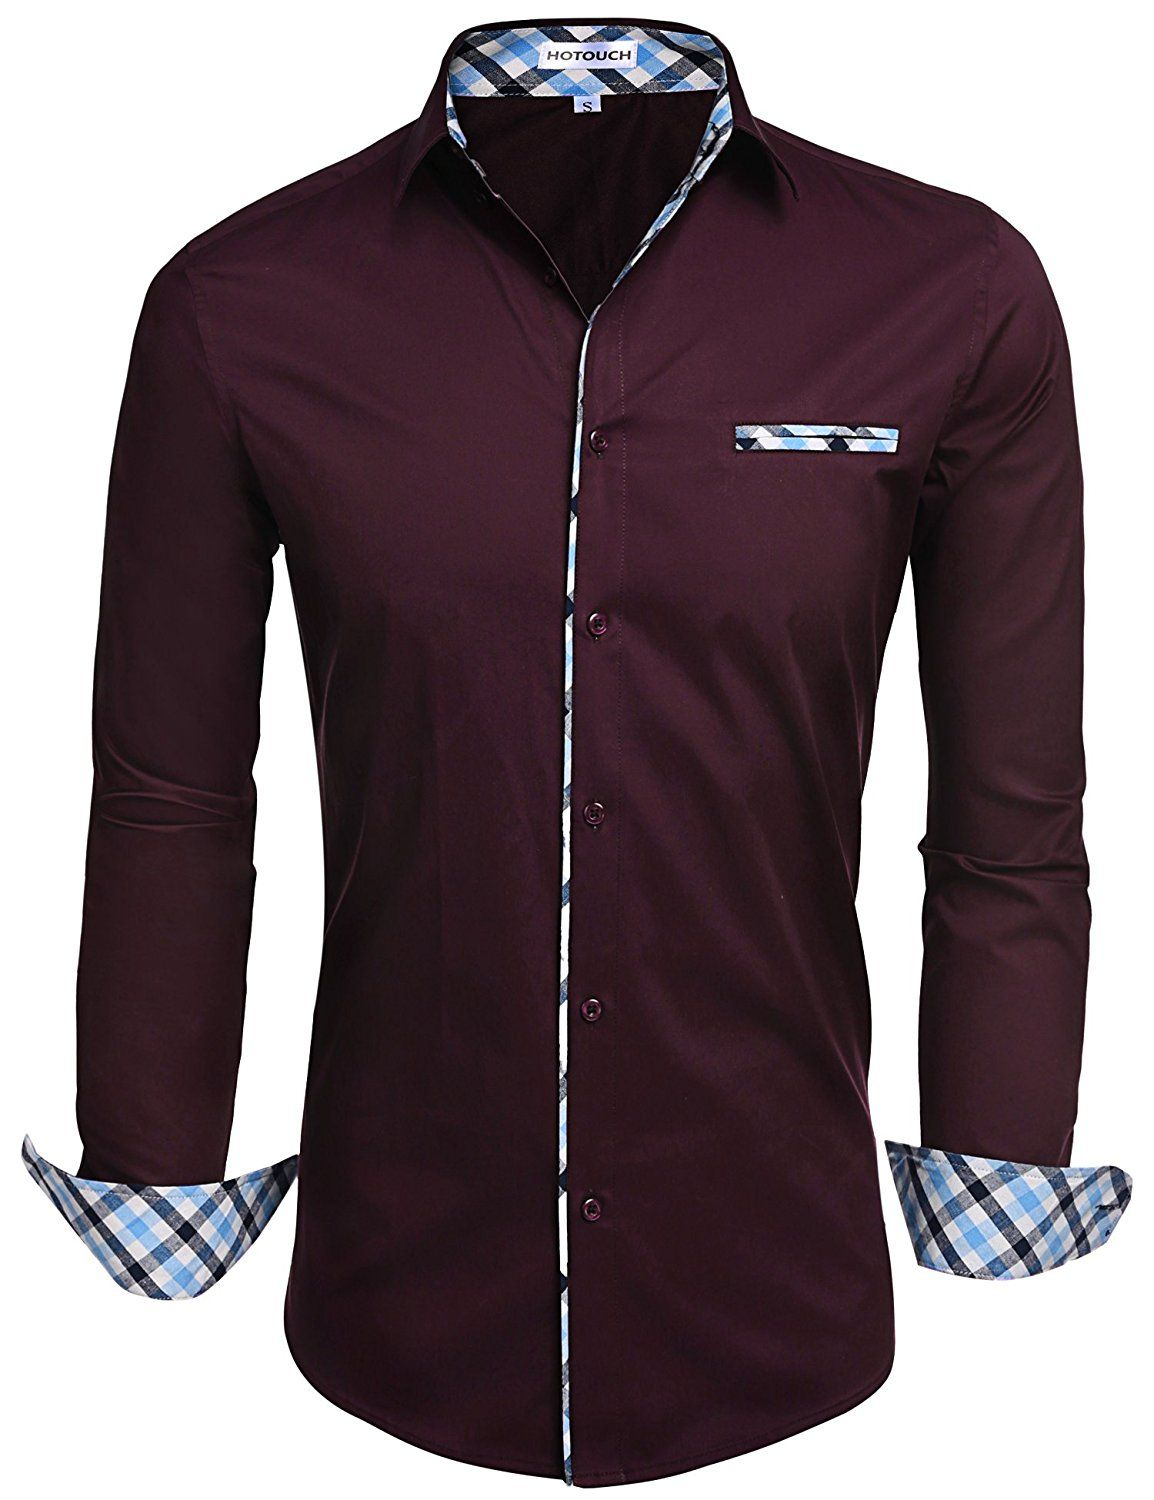 c7d8ece77a72  20.99 -  25.99 HOTOUCH Mens Long Sleeve Inner Contrast Casual Button Down  Shirts Assorted Color   Pattern Variety